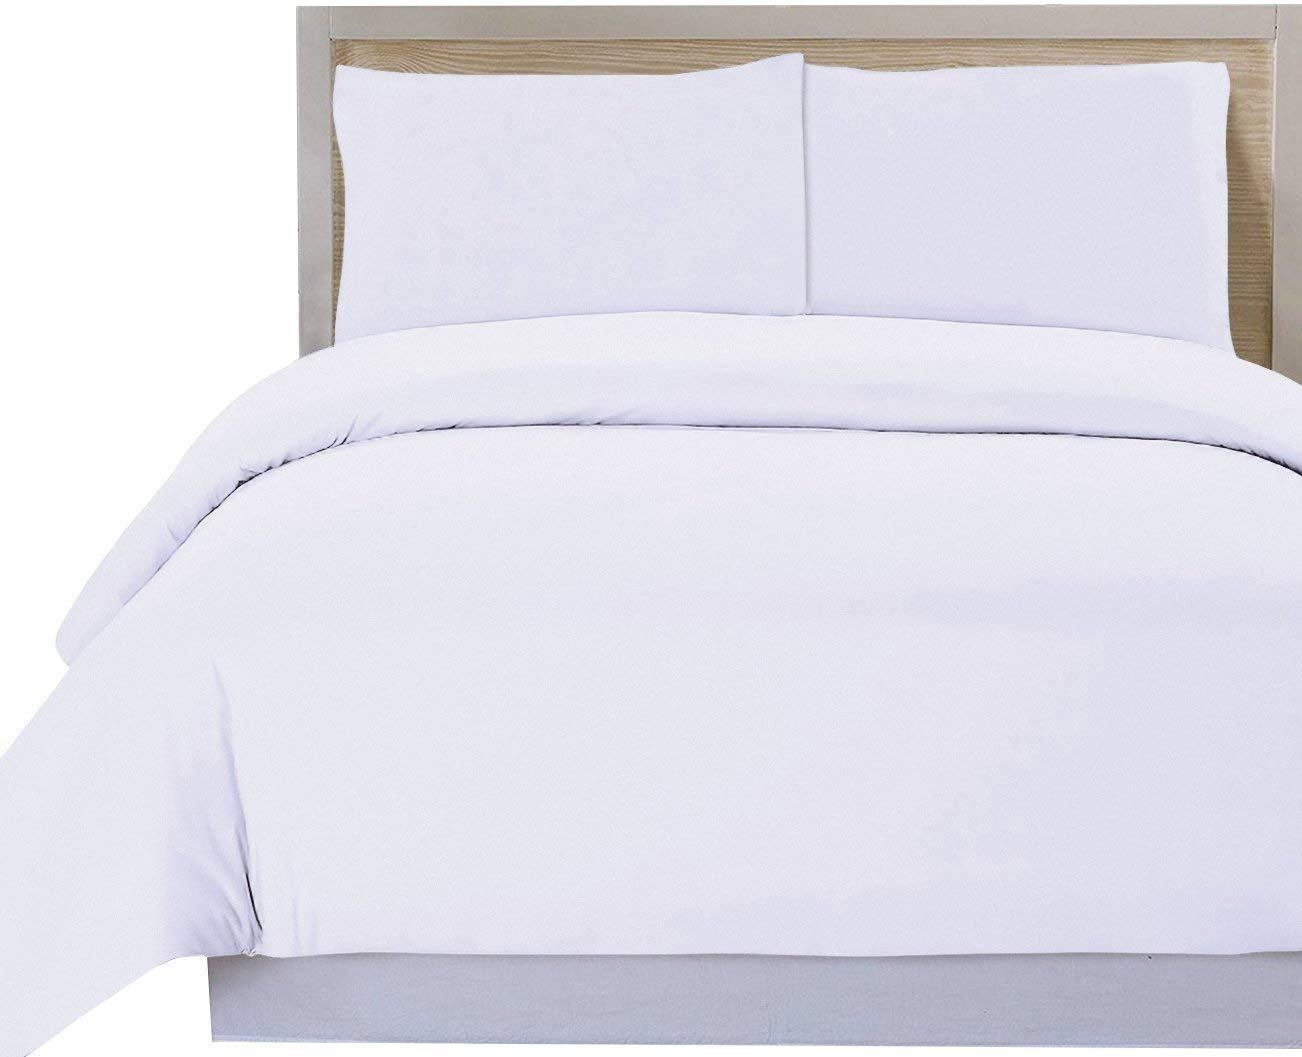 Double Corovin Water Resistant Duvet Protector